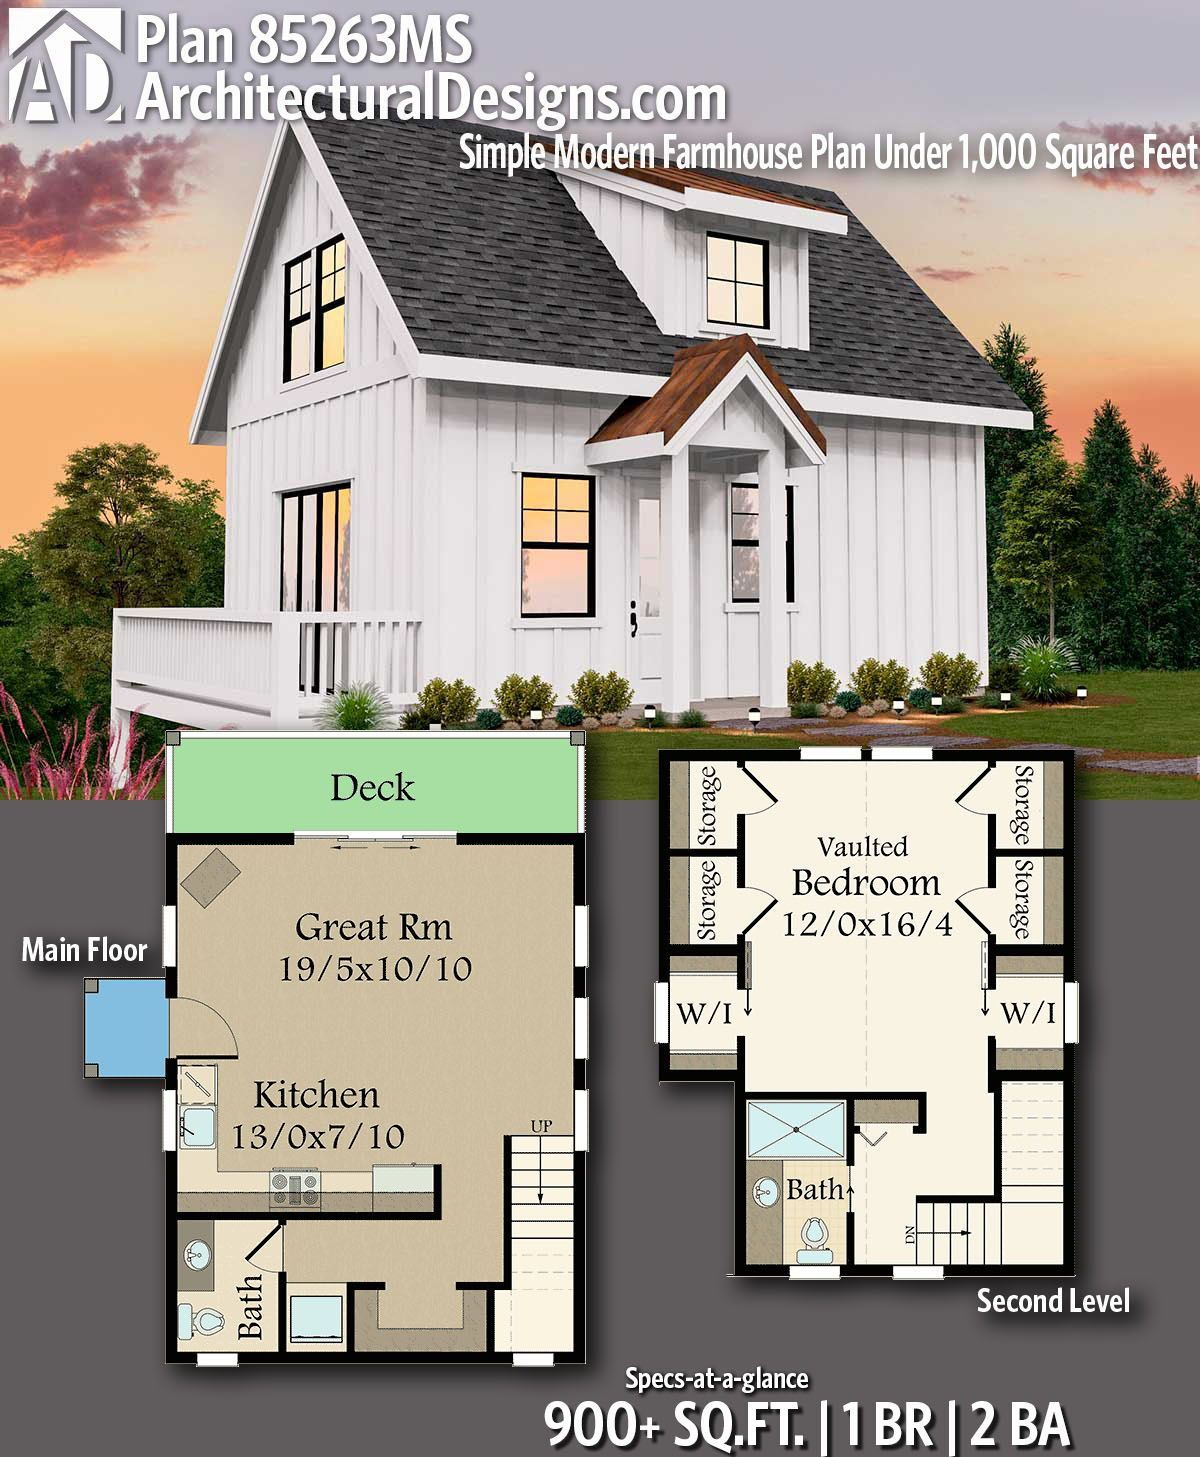 Architectural Designs Tiny House Plan 85263ms With 1 Bedrooms 2 Full Baths In 900 Sq Ft Per U Modern Farmhouse Plans House Plans Farmhouse Cottage House Plans